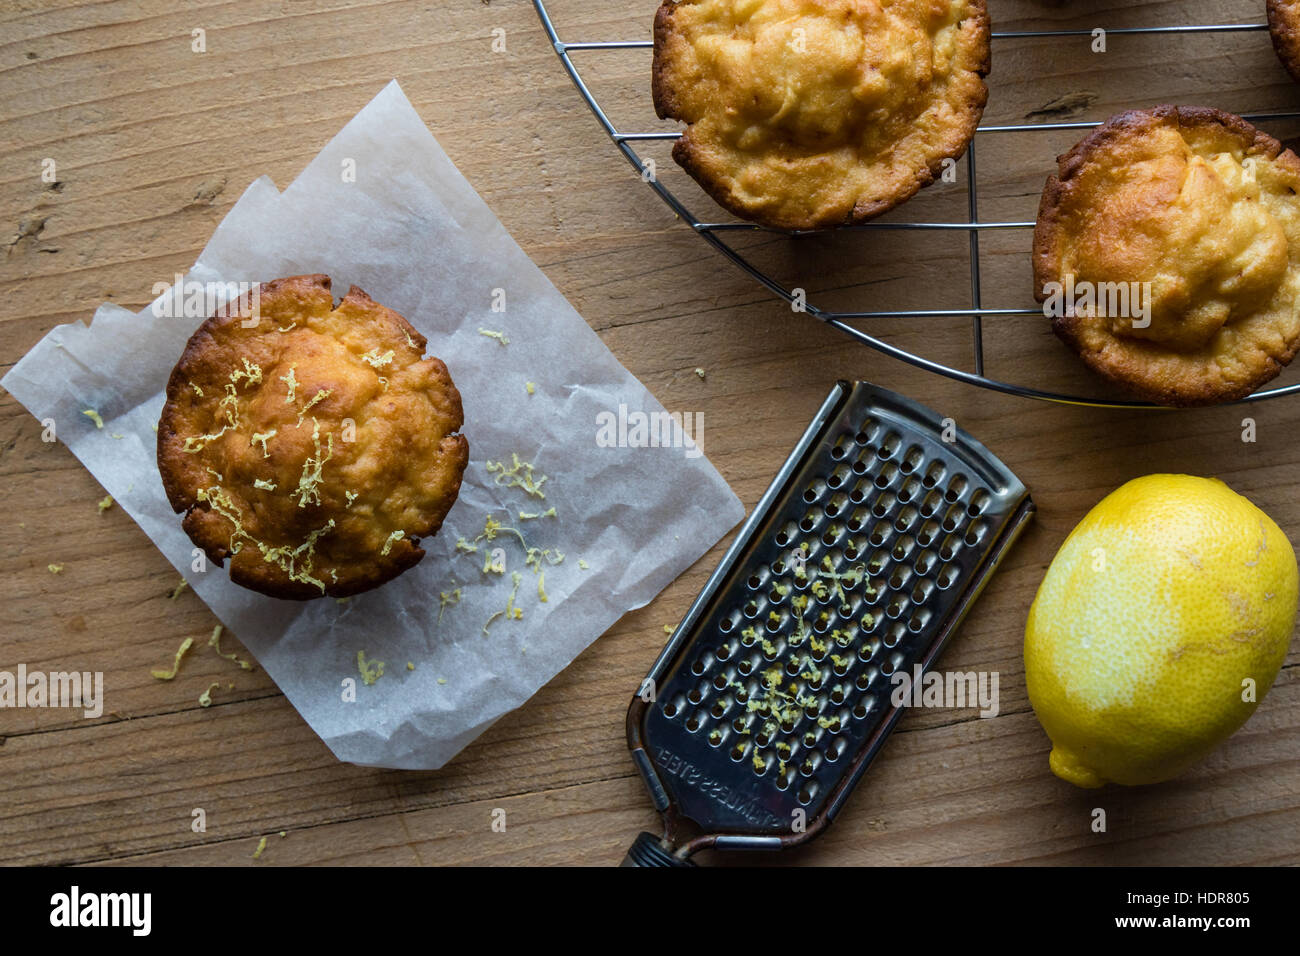 homemade fresh lemon muffin on wooden table - Stock Image